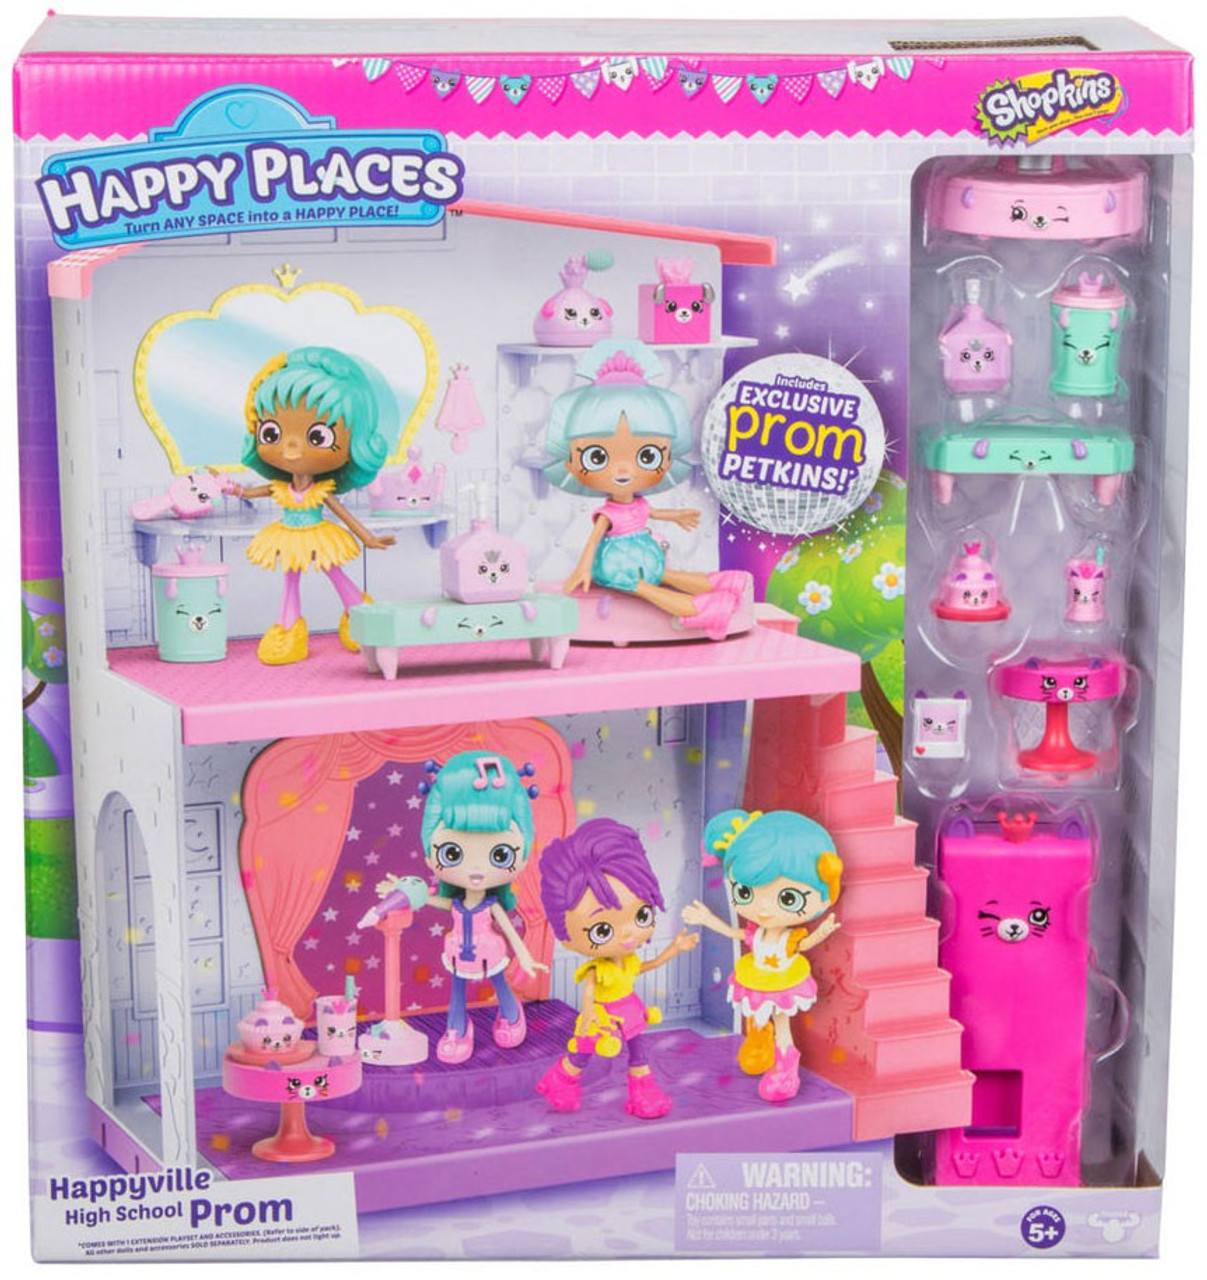 Shopkins Happy Places Happyville High School Prom Playset Moose Toys Toywiz